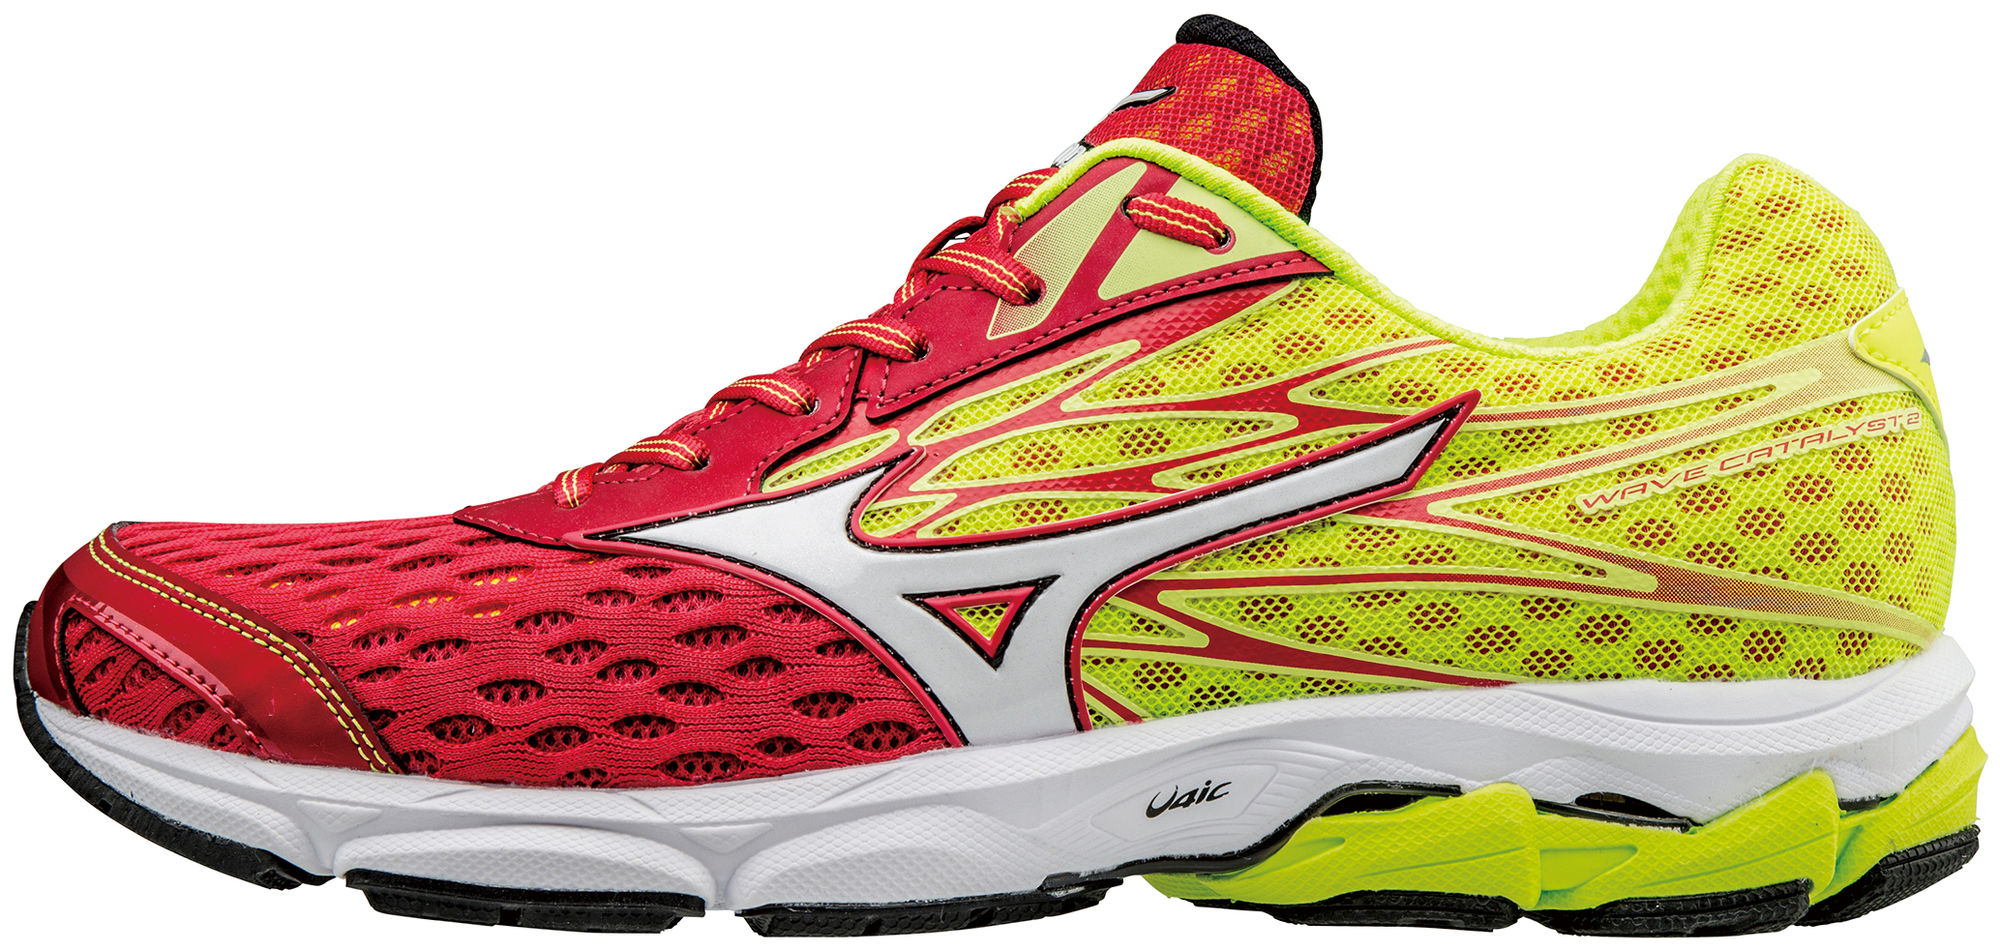 Mizuno Wave Catalyst 2 in Lollipop/Safety Yellow